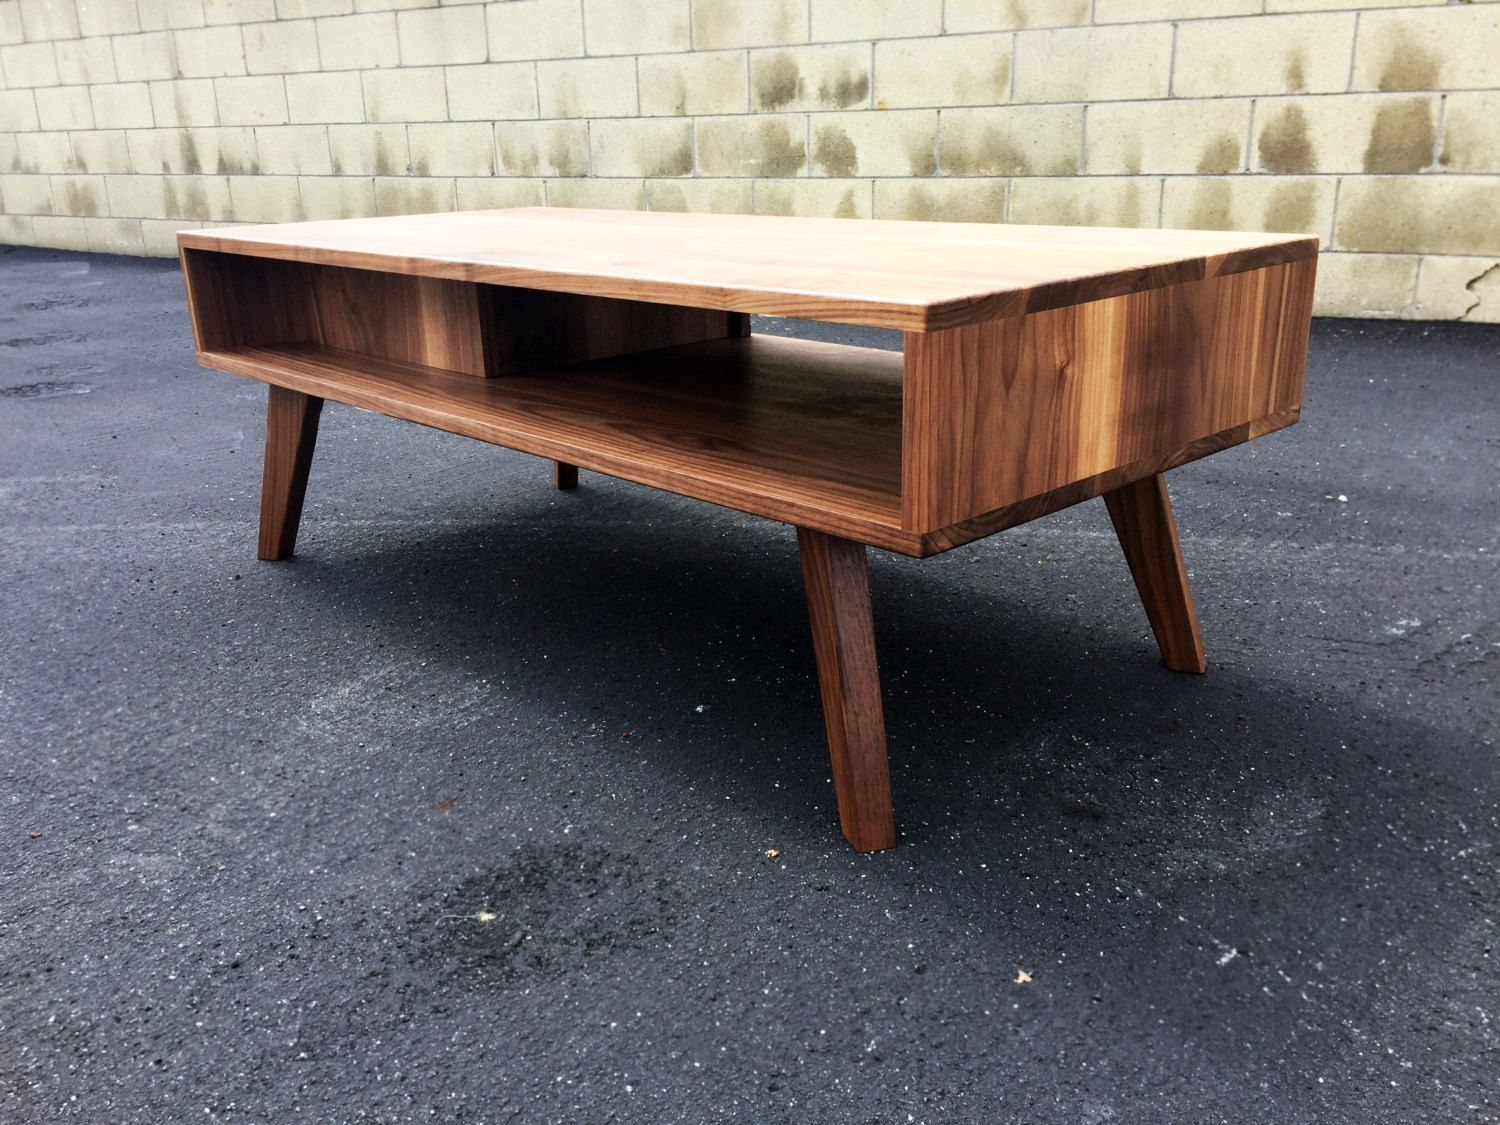 The Par A Mid Century Modern Coffee Table Modern Etsy Mobler Huse [ 1125 x 1500 Pixel ]